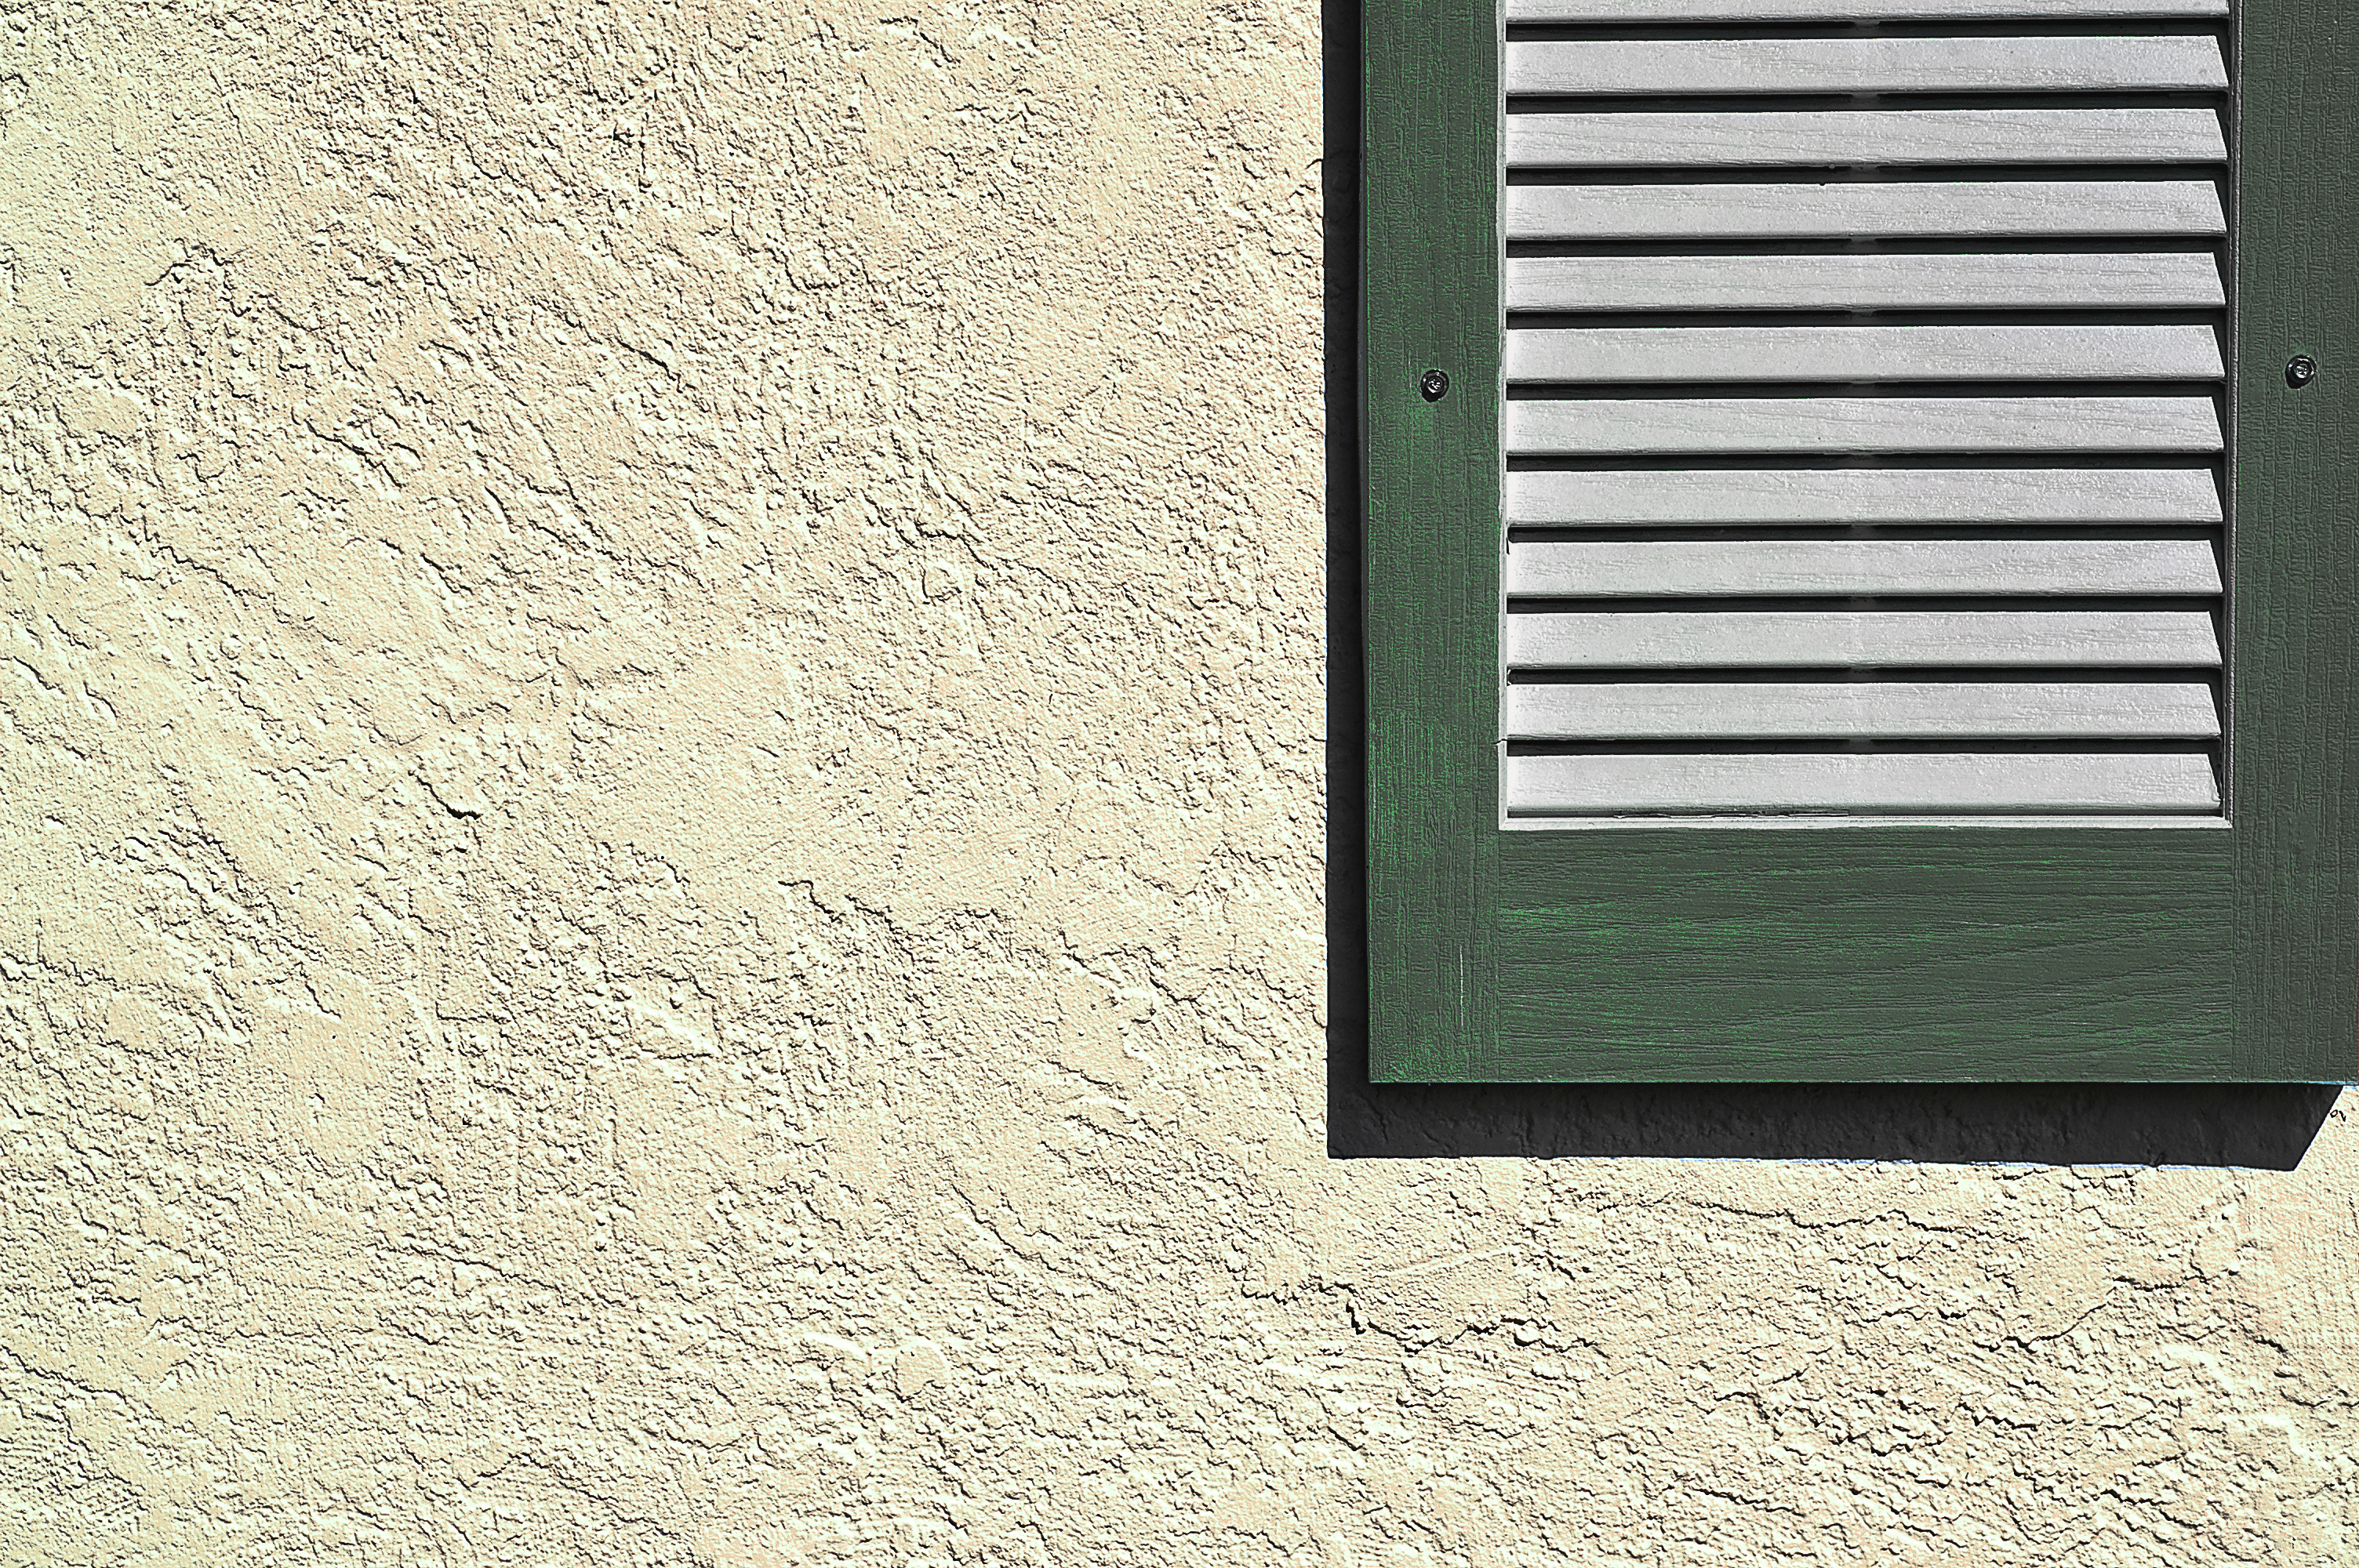 Green shutter on exterior stucco wall